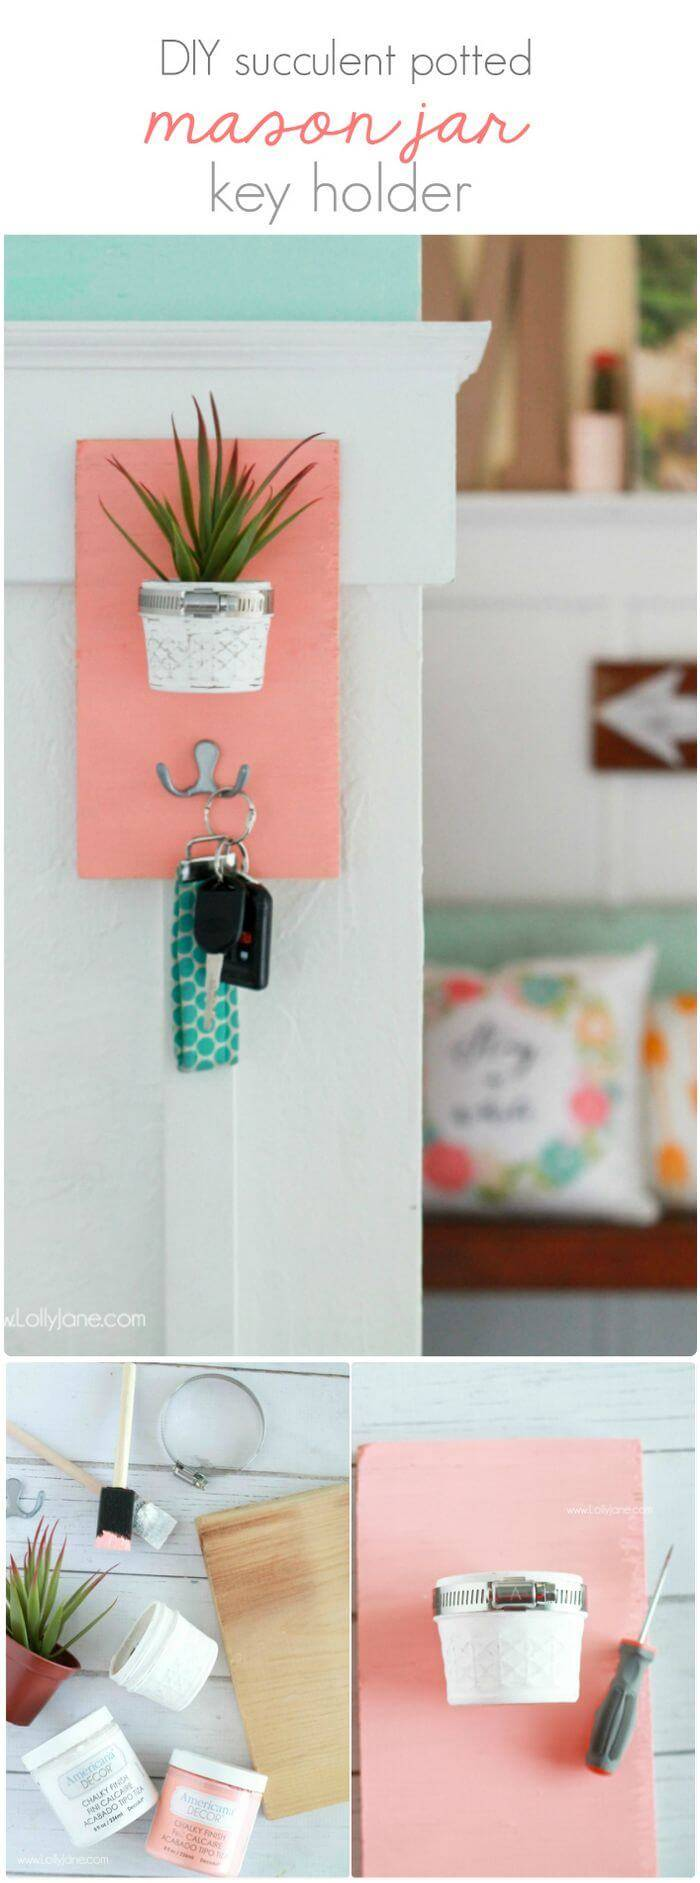 Potted Mason Jar Key Holder